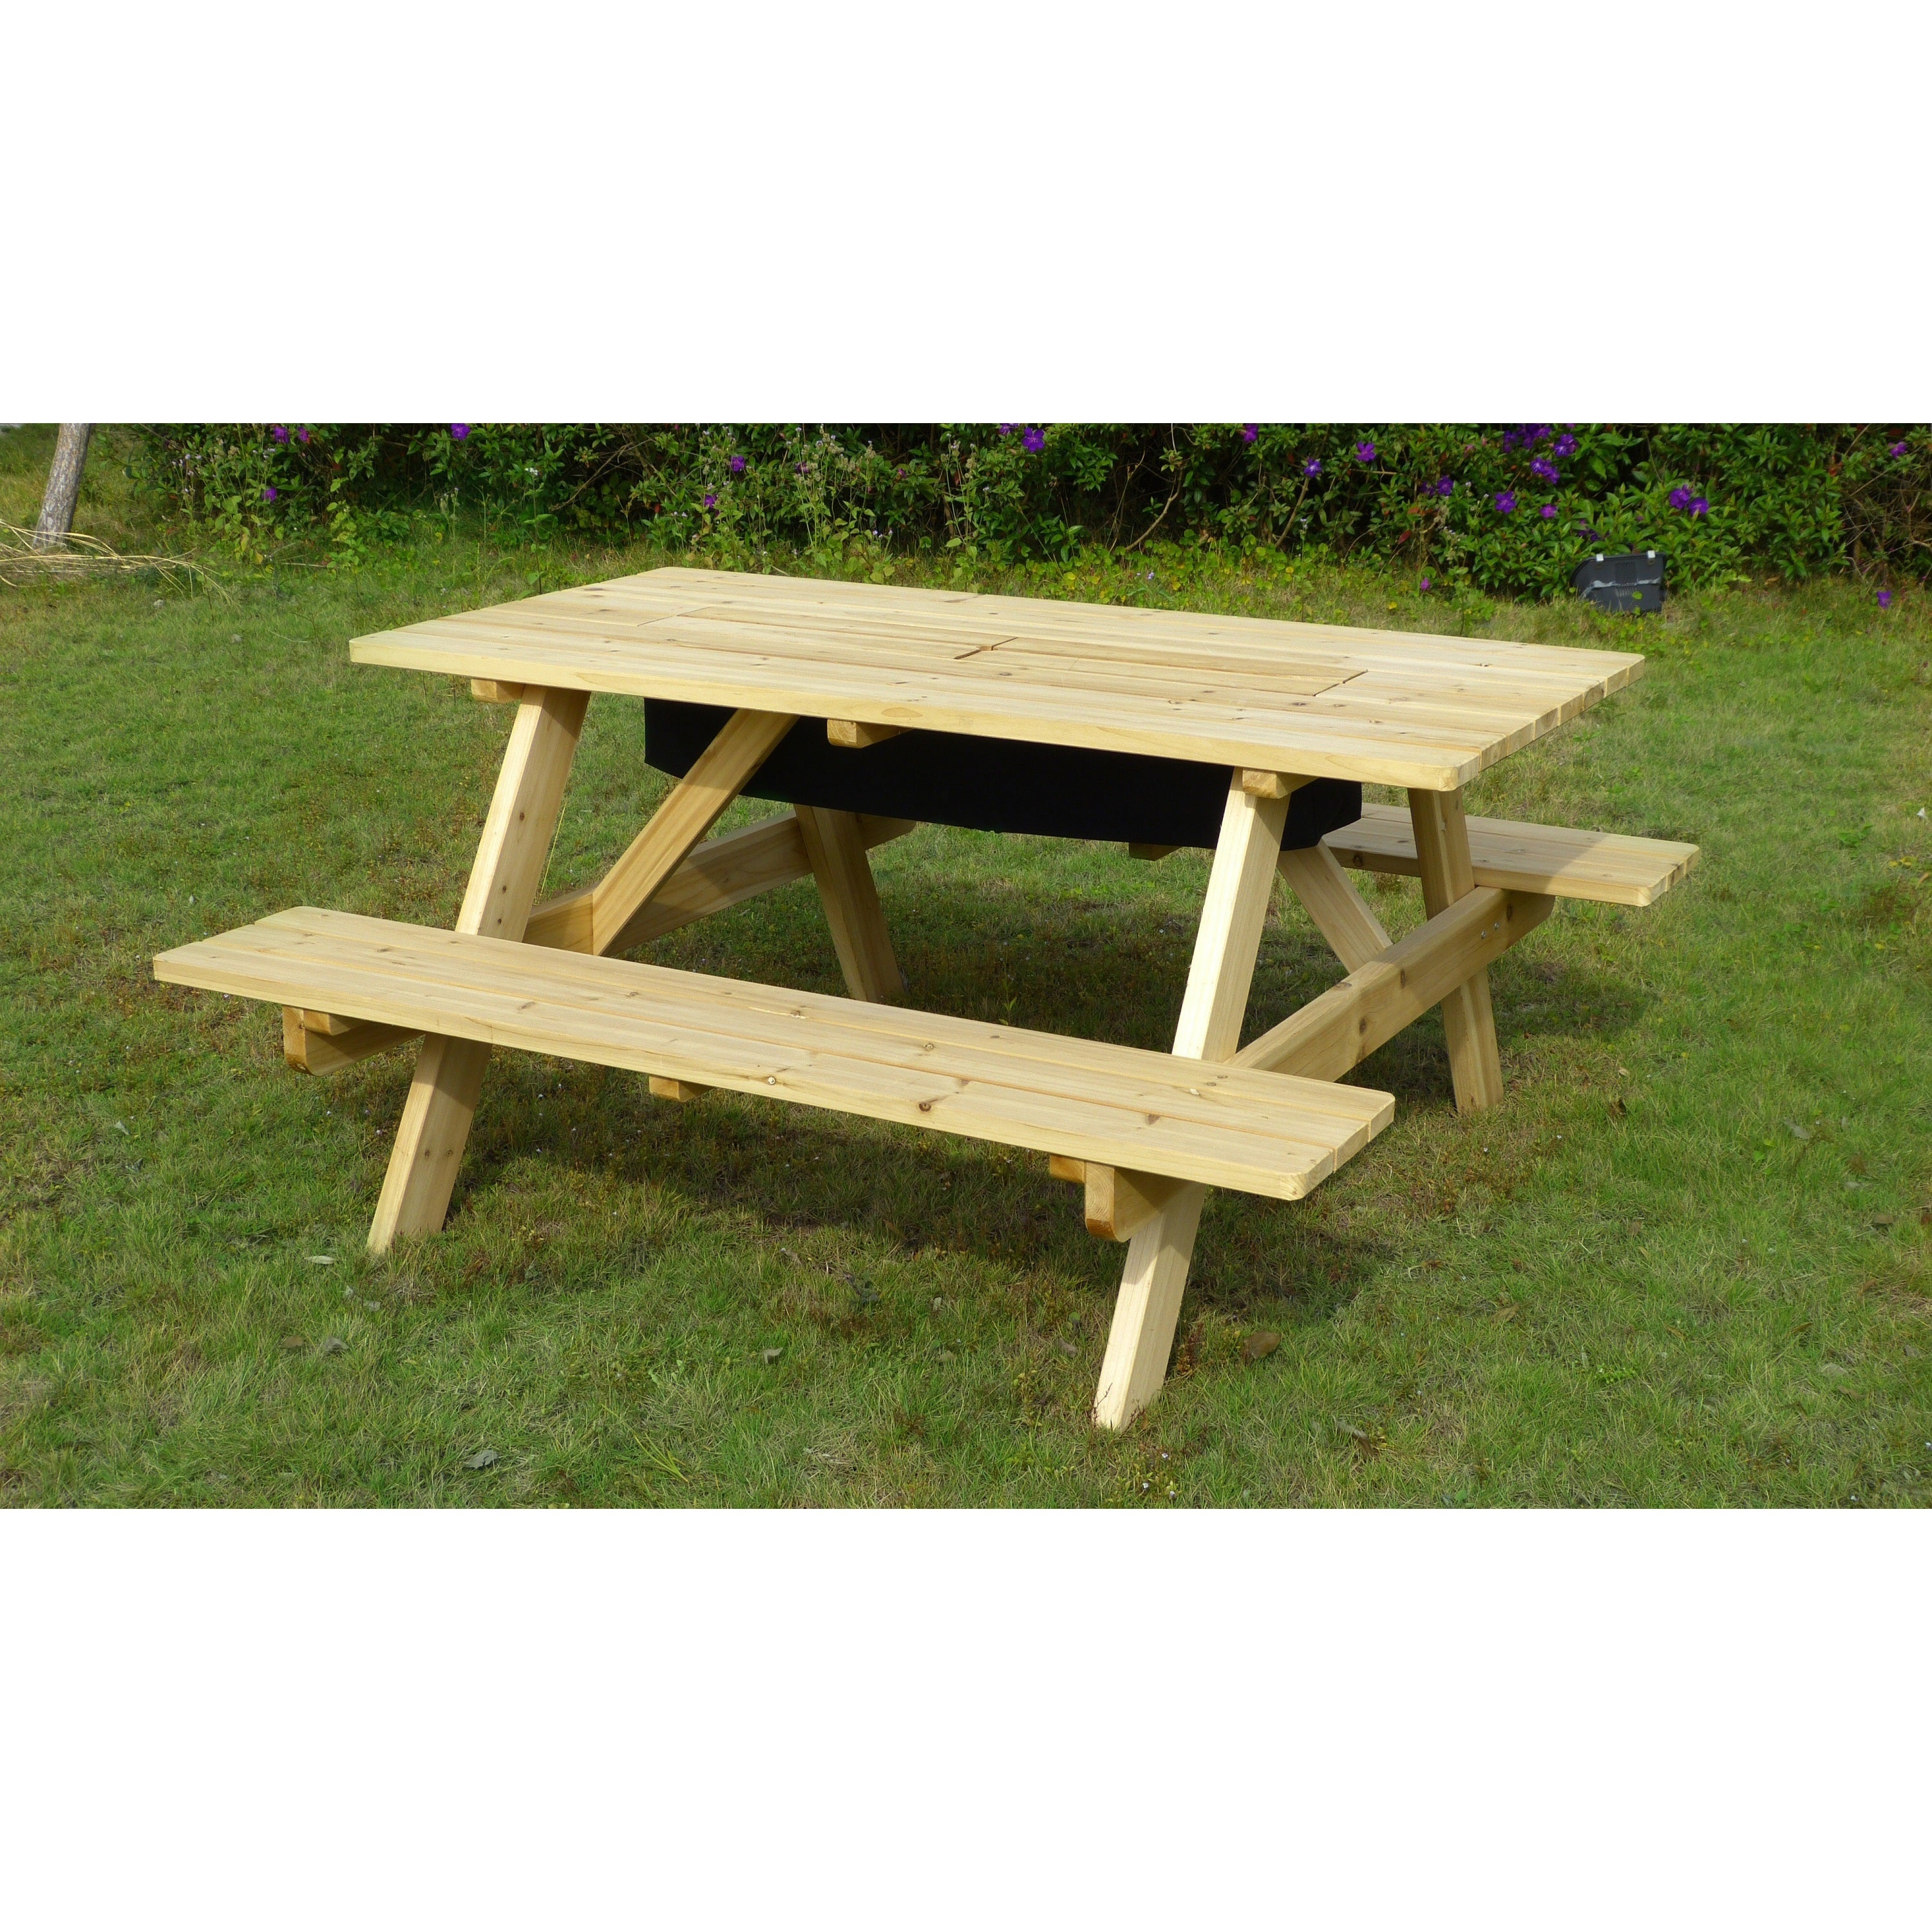 Astounding Havenside Home Sorrento Wood Cooler Picnic Table Gmtry Best Dining Table And Chair Ideas Images Gmtryco